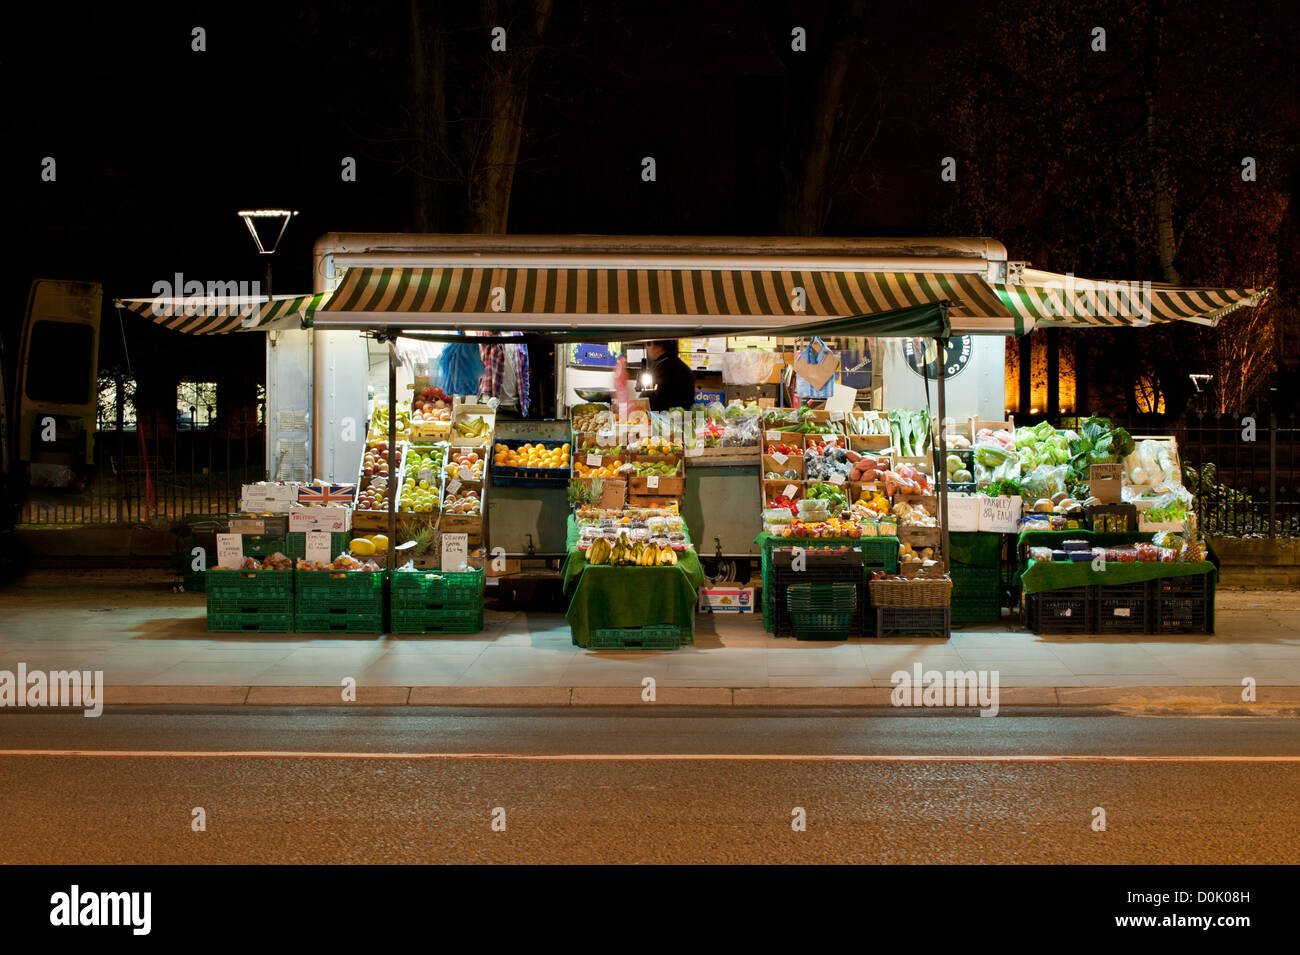 A fruit and veg stall on Oxford Road in Manchester. - Stock Image